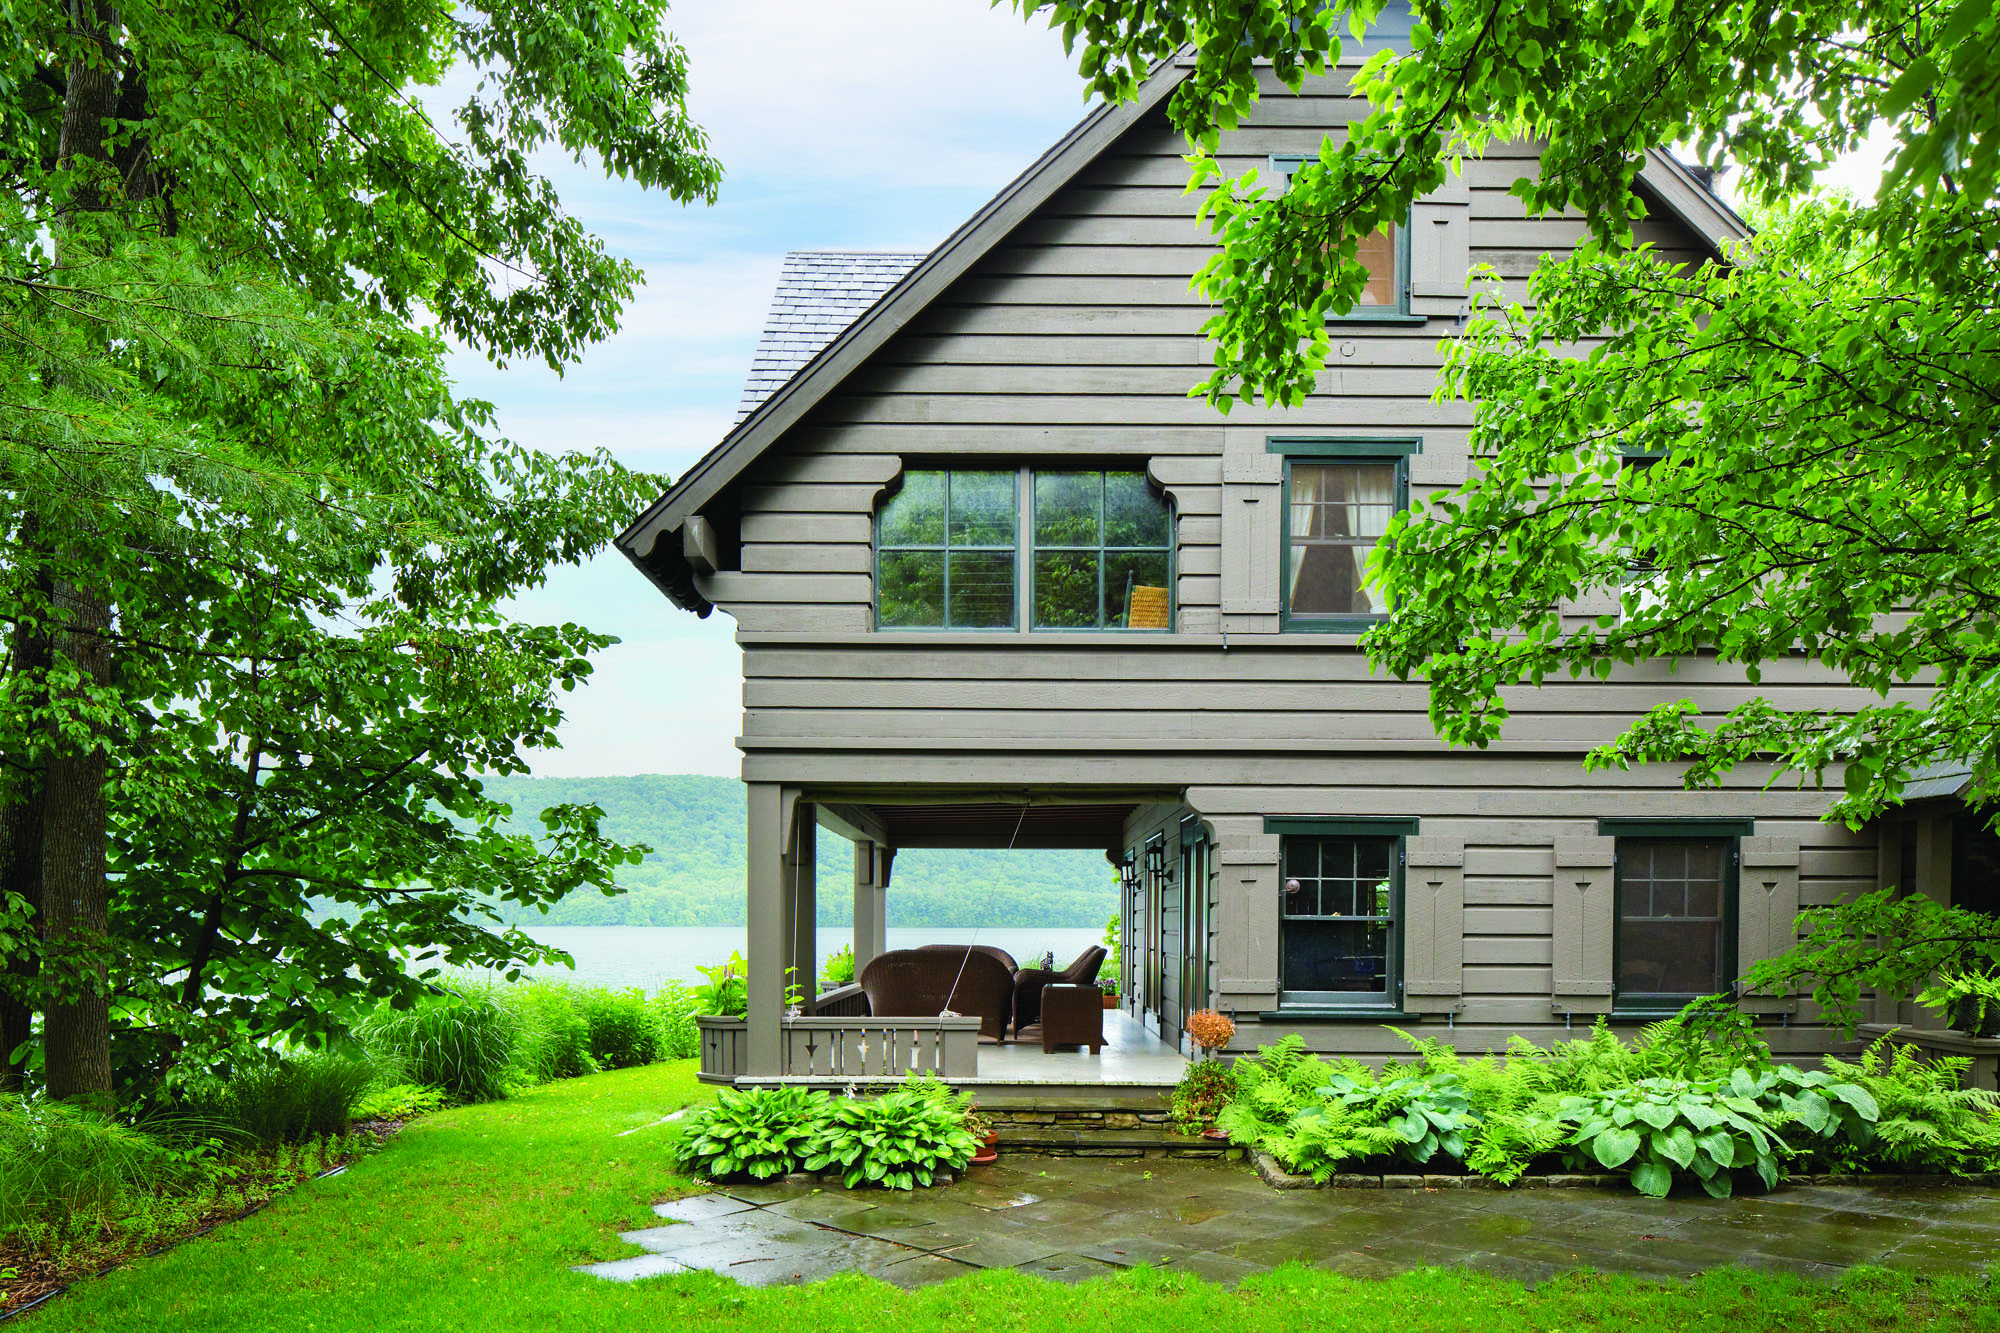 The lakeside lodge is clad in  hemlock weatherboards. Cutouts and scalloped edges lend Swiss Chalet-style charm.